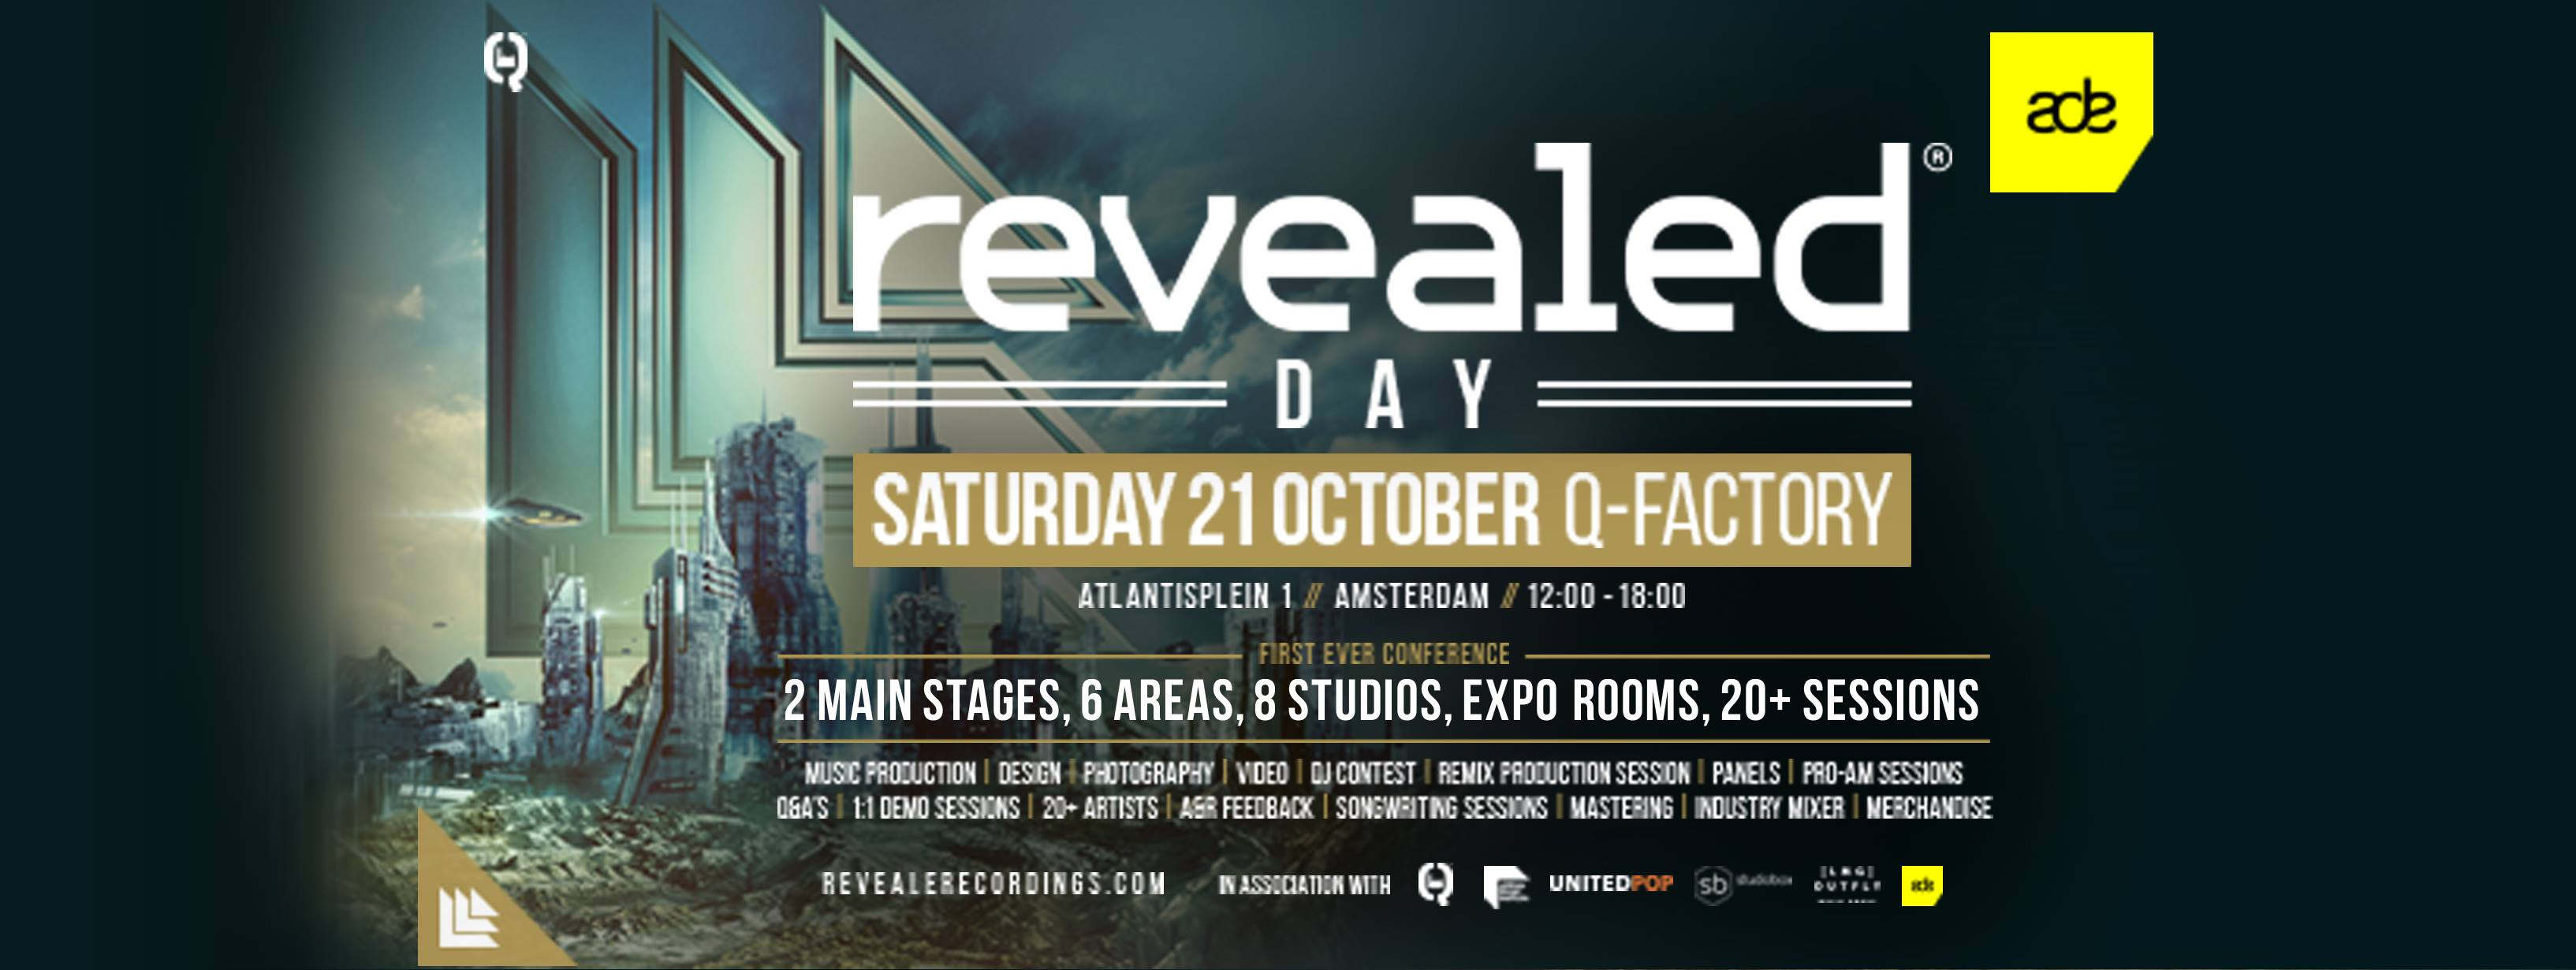 Revealed ADE Day Conference